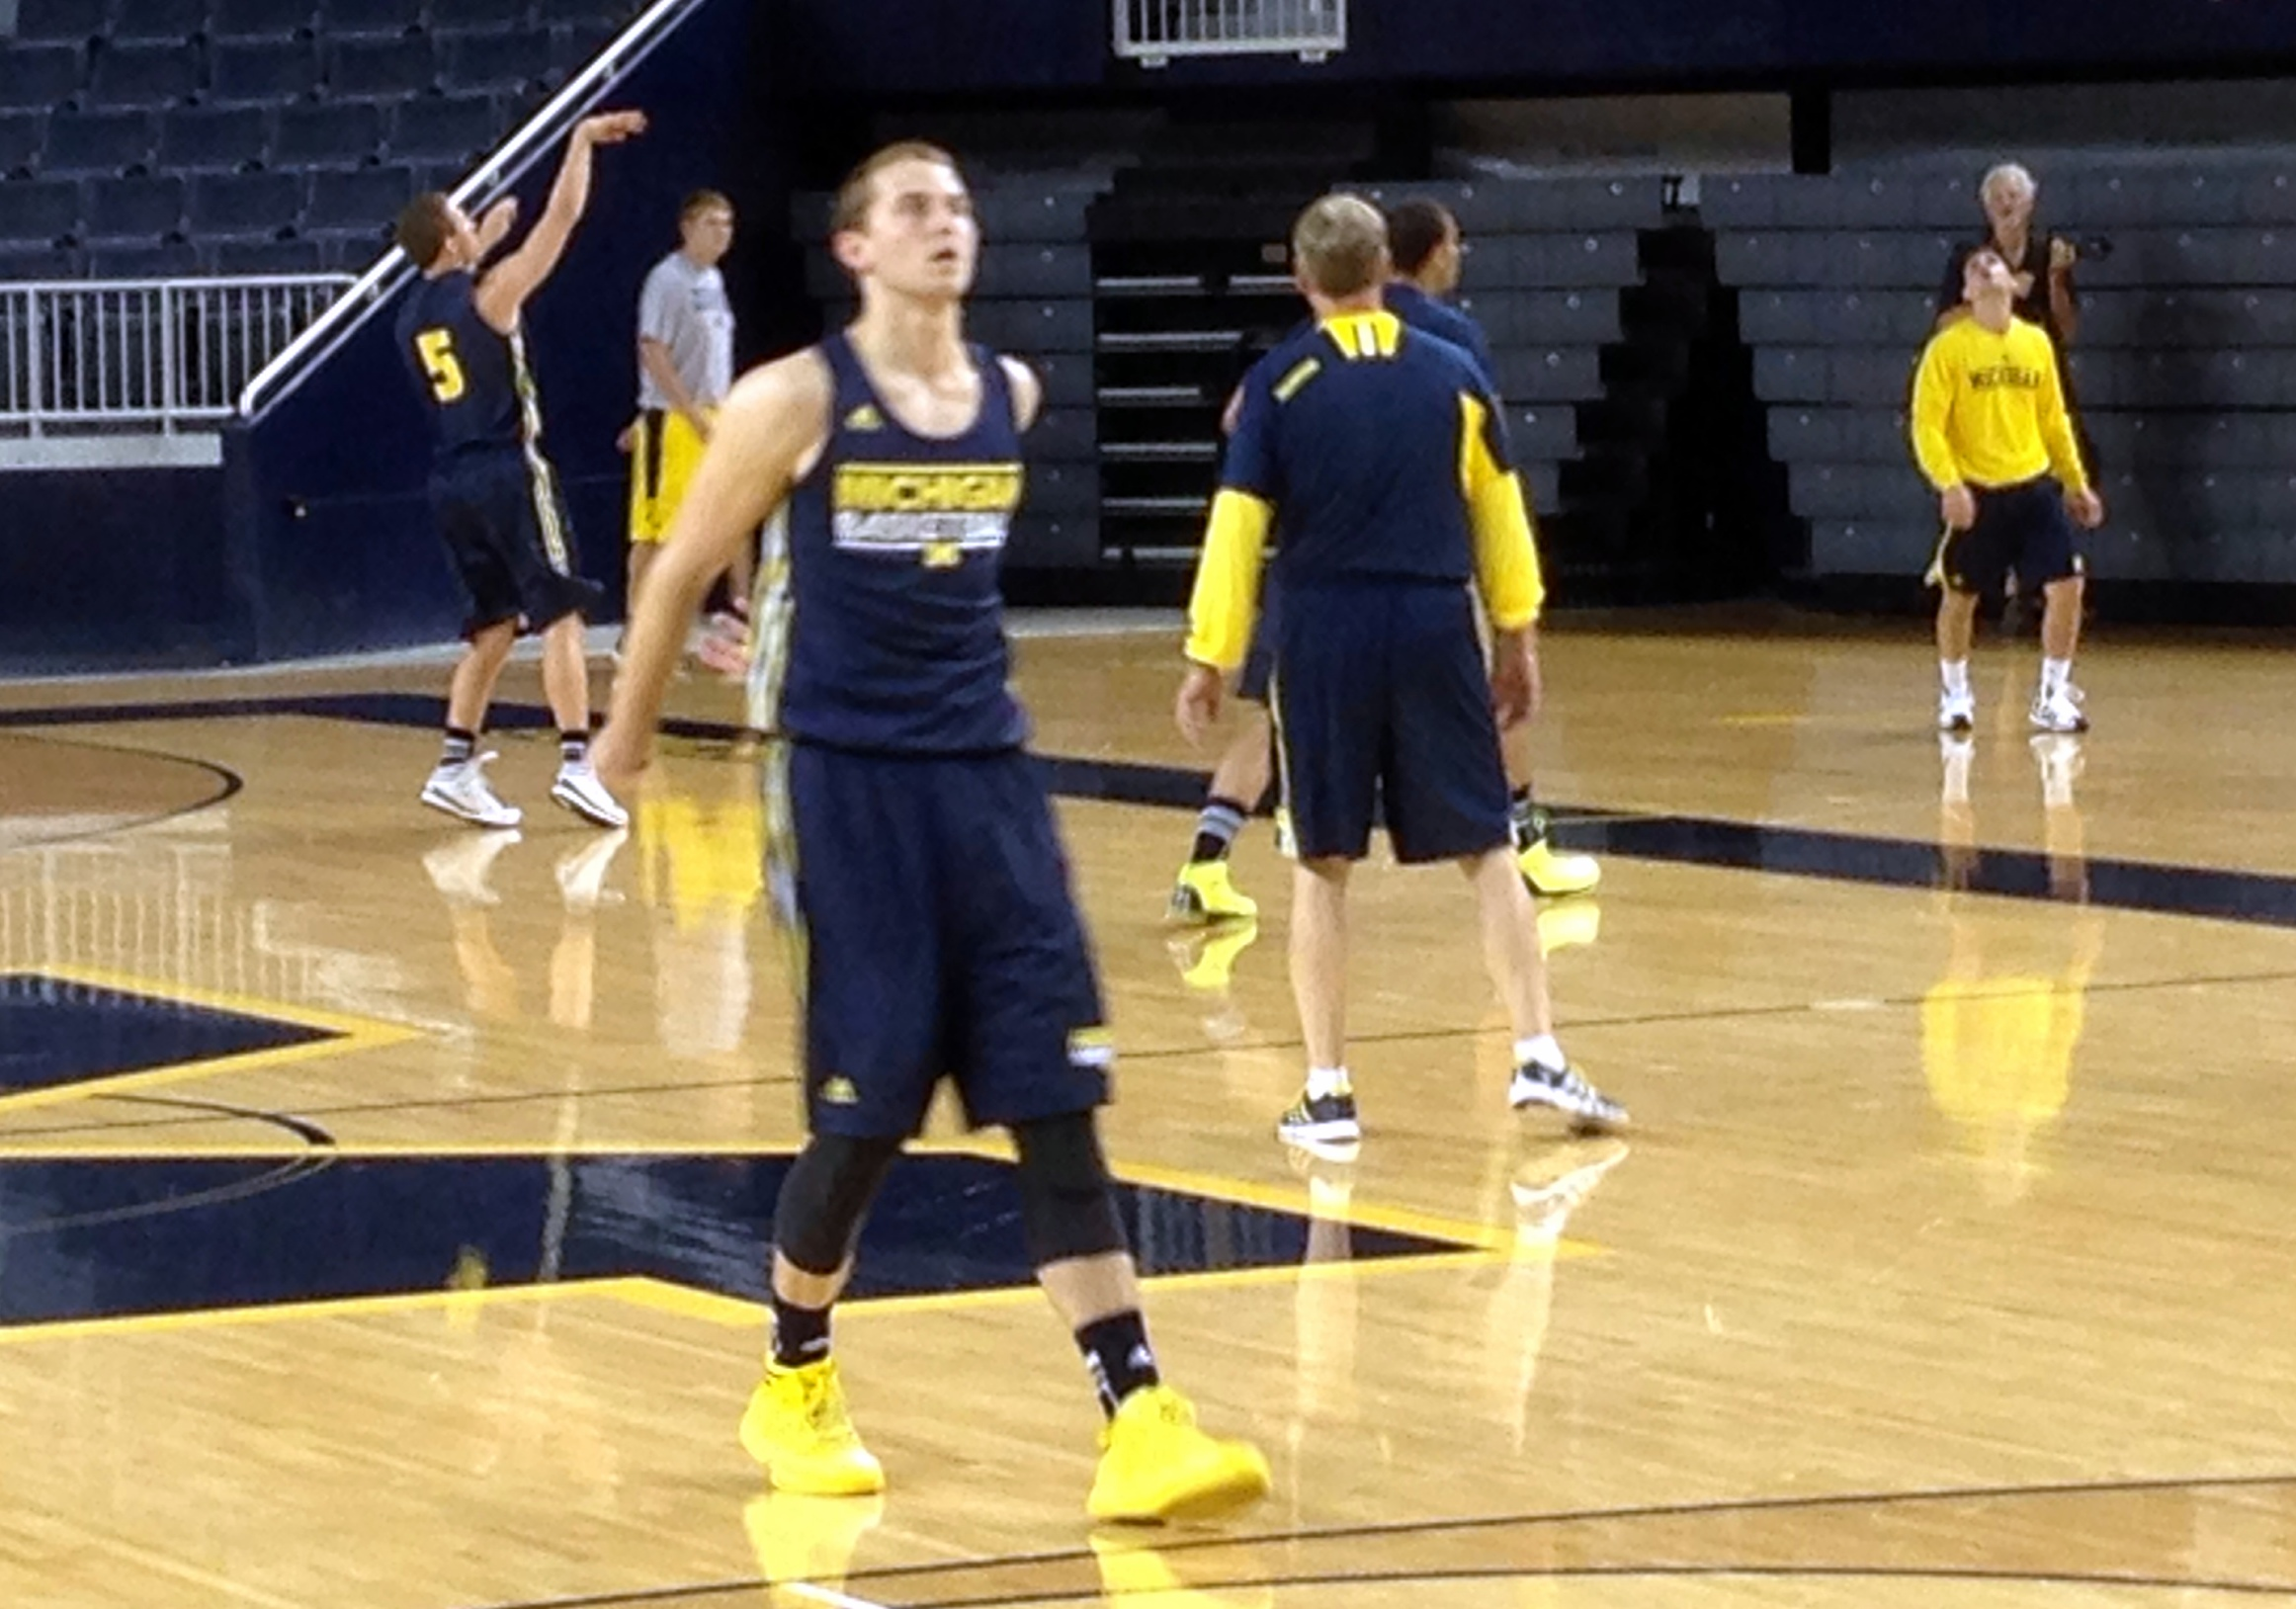 Michigan First Practice – 6